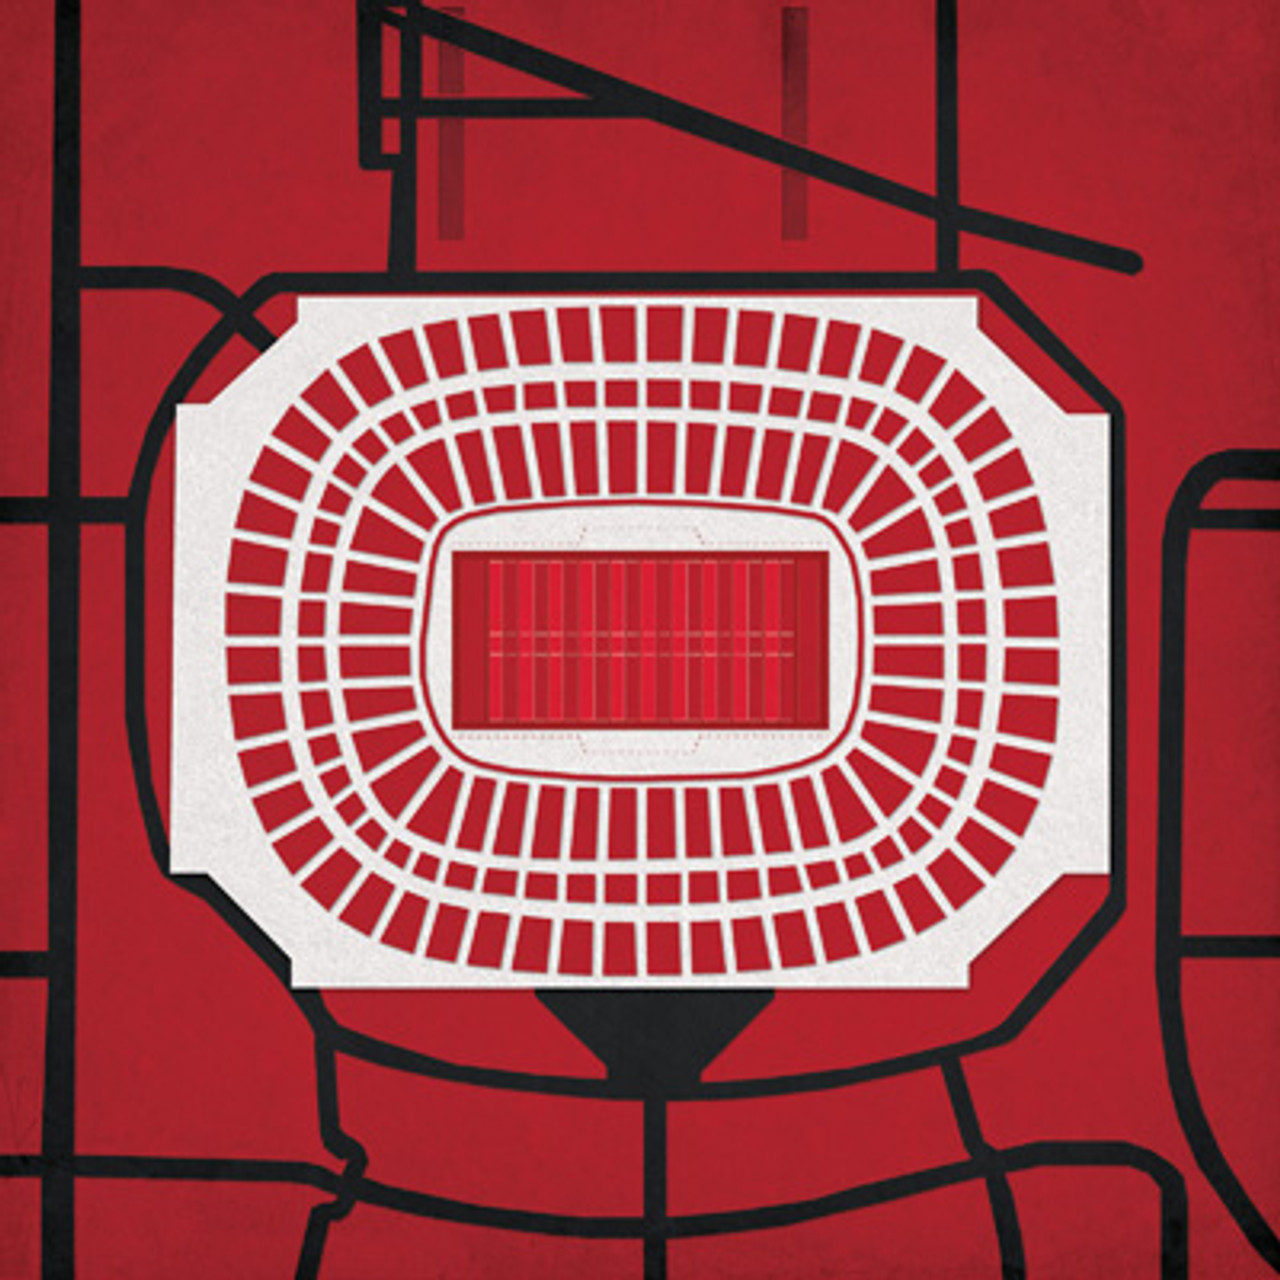 Georgia Dome - Atlanta Falcons City Print